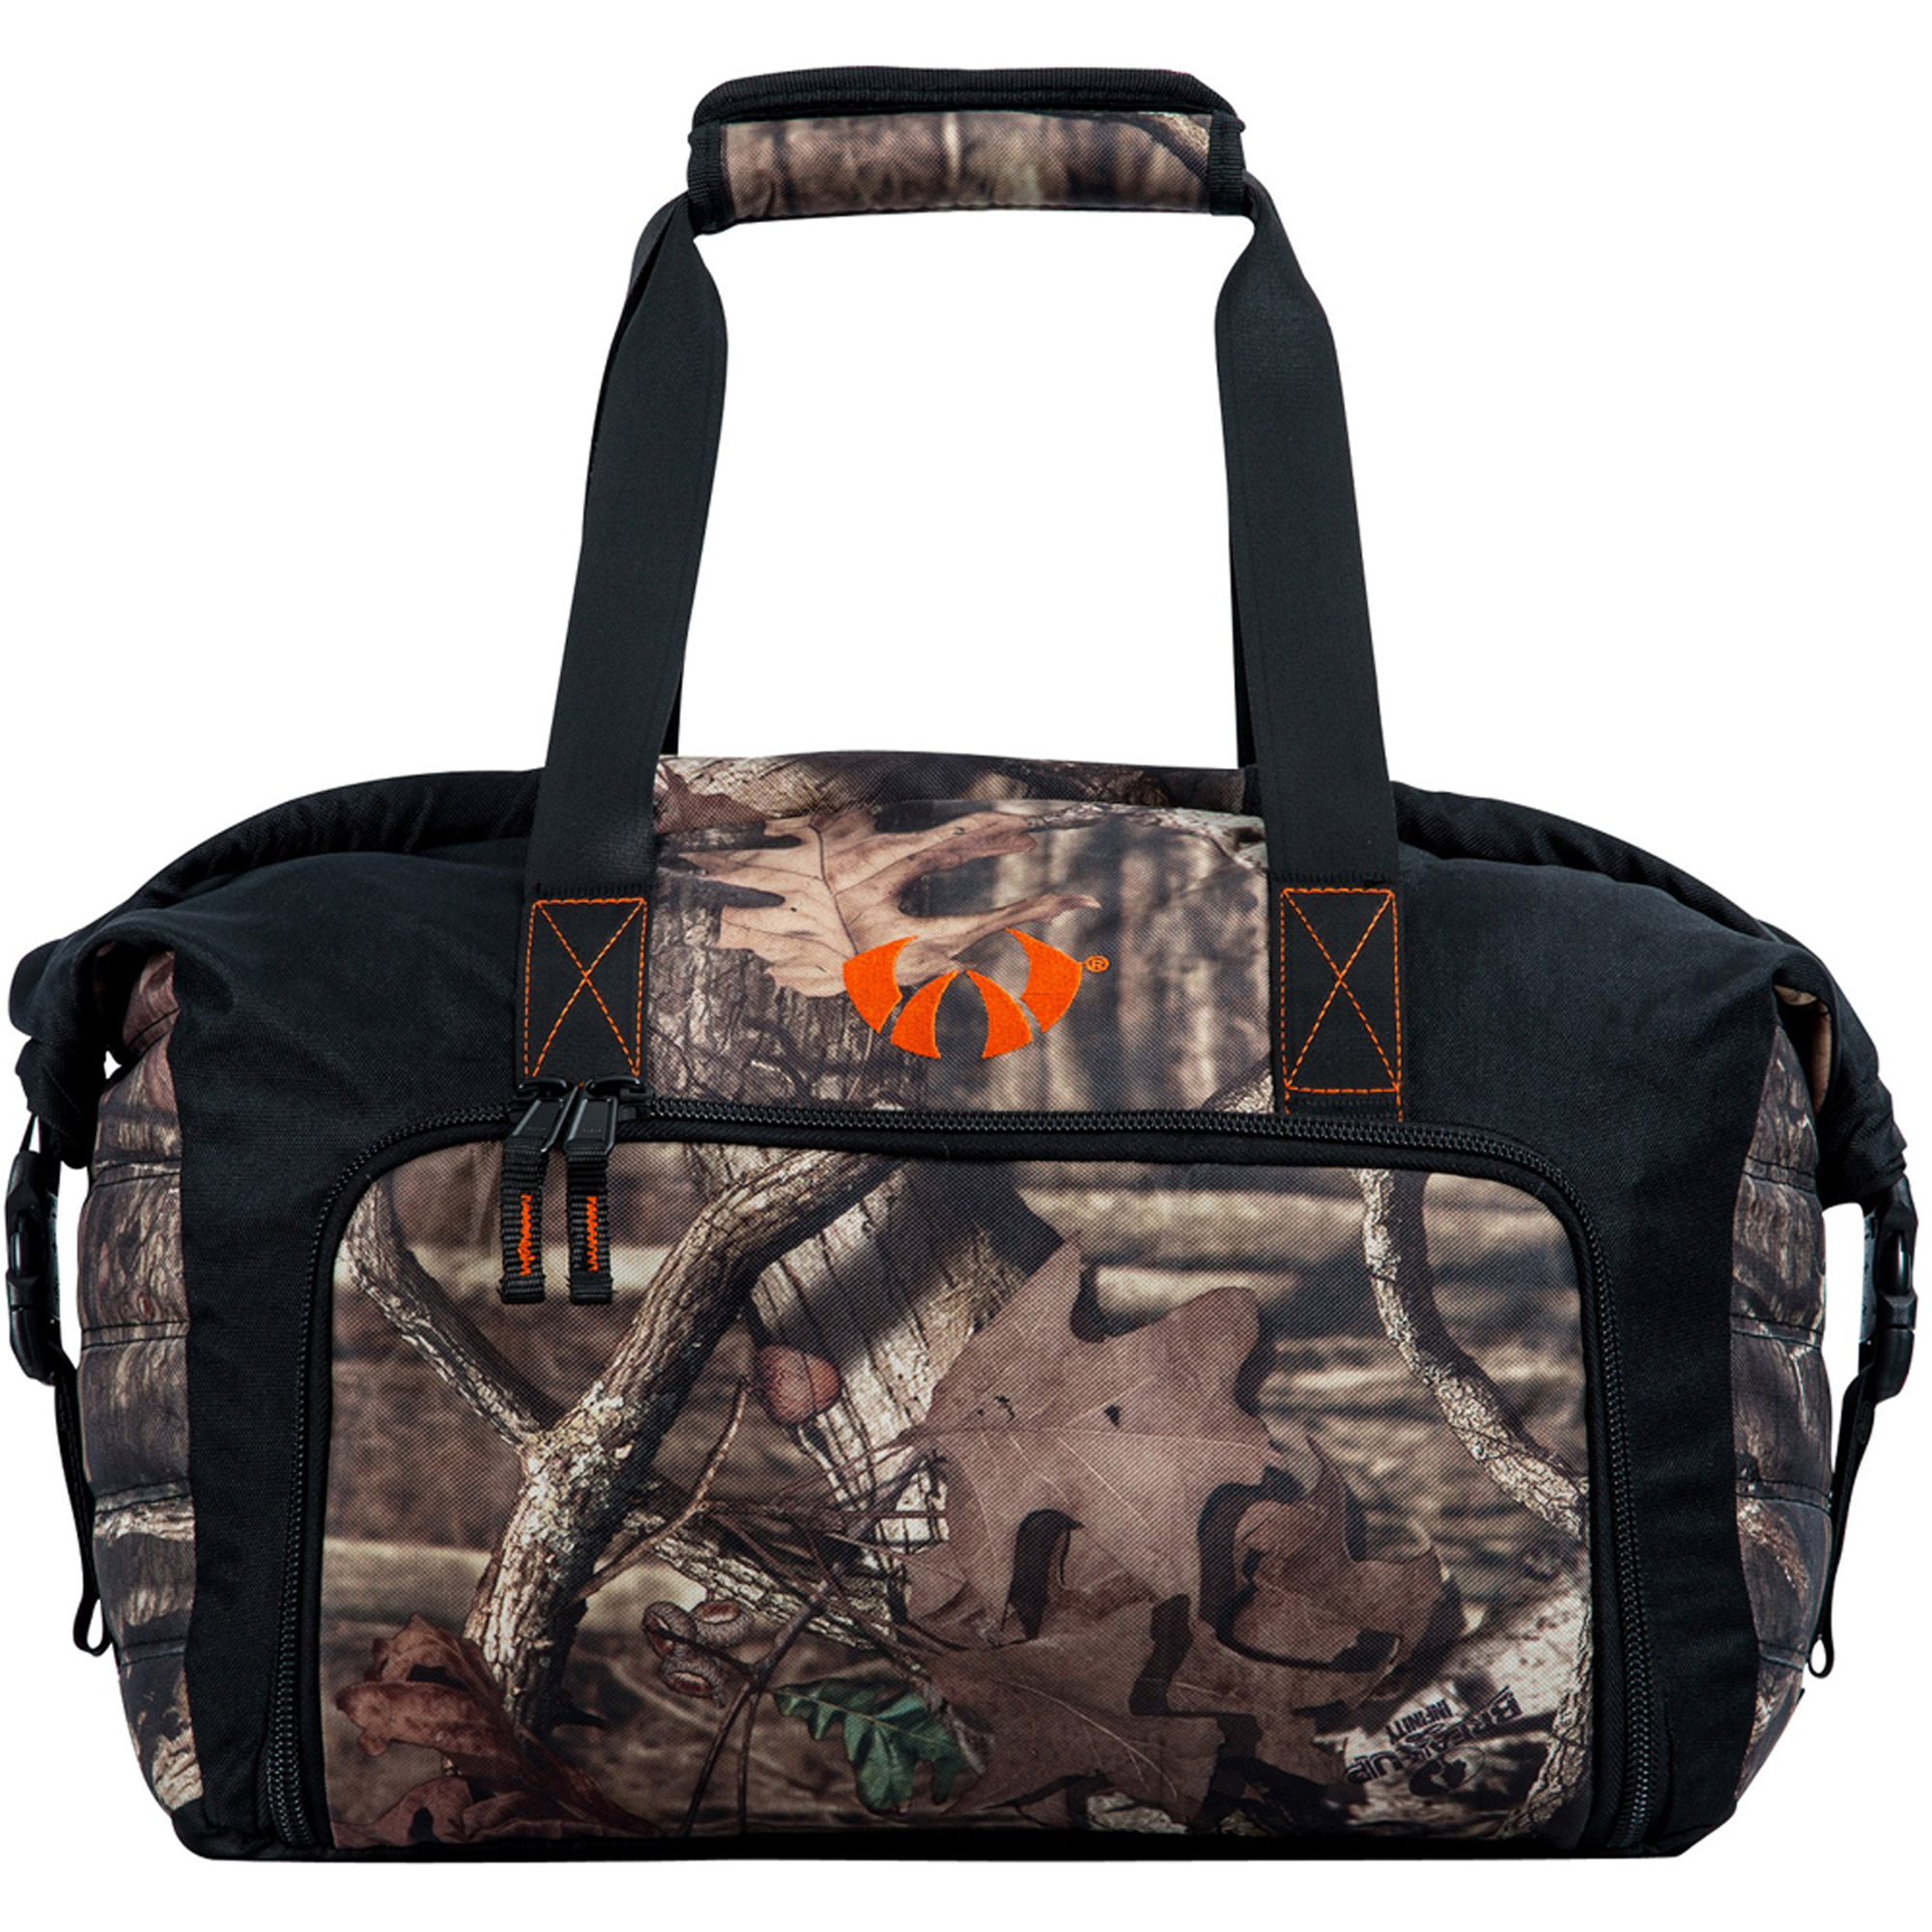 Watson Airlock Mini Camo Carrier, Orange/Mossy Oak